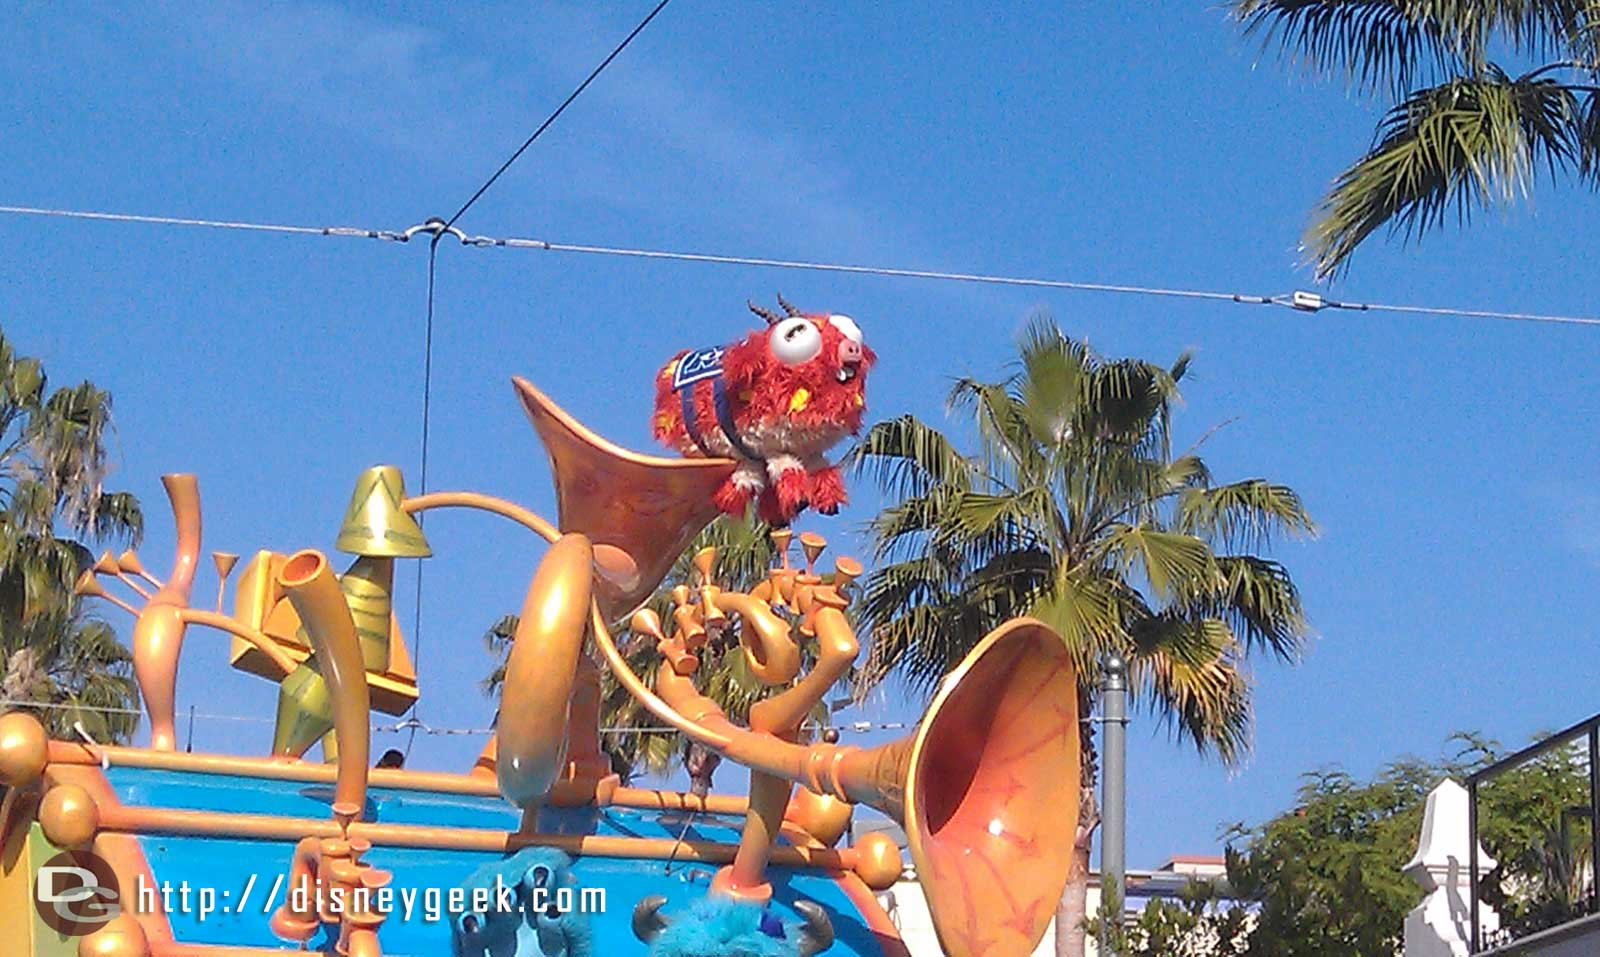 Even  the Fear Tech mascot is in the Pixar Play  Parade